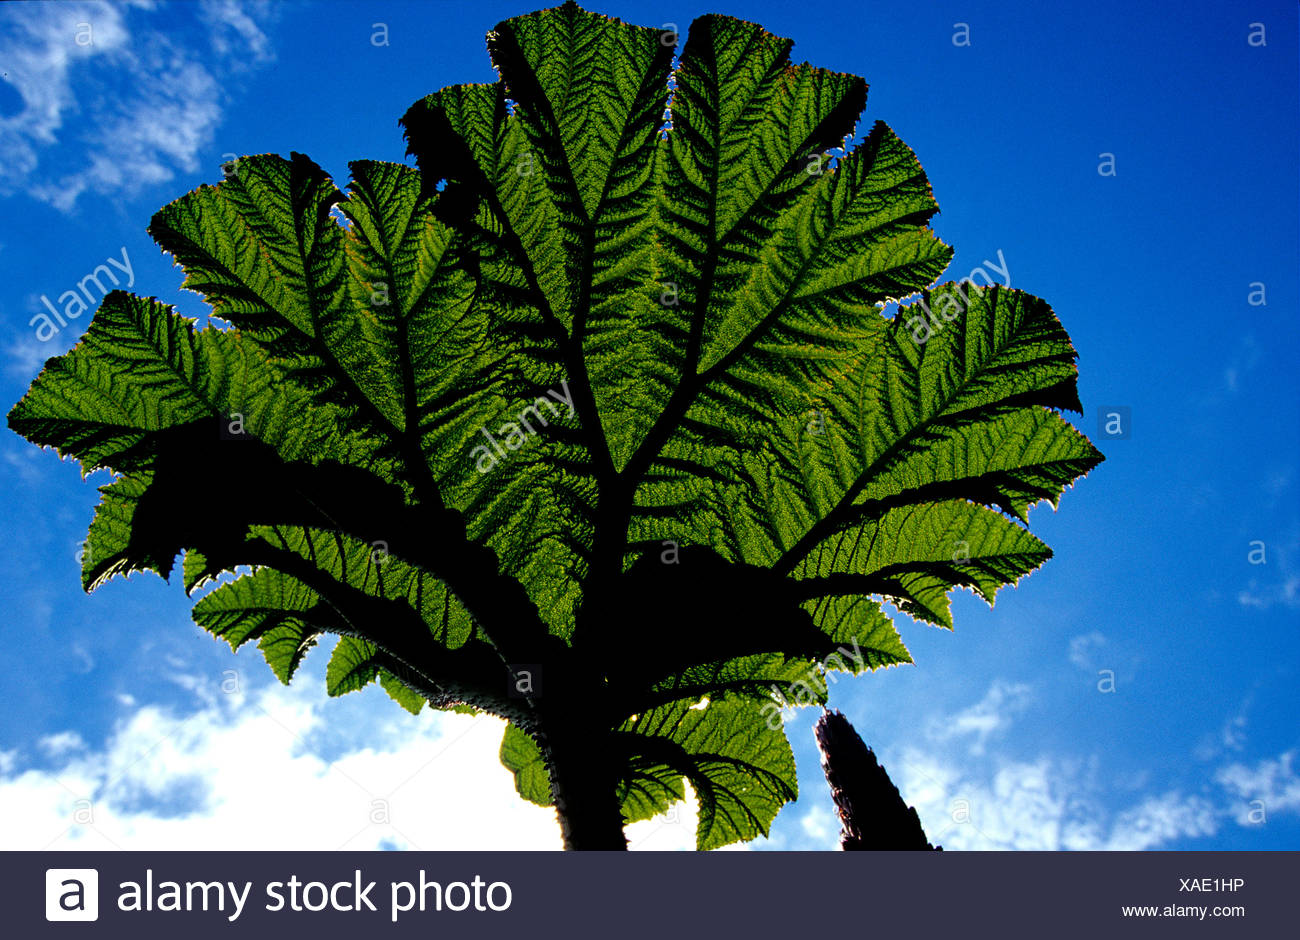 Gunnera Insignis Giant rhubarb leaf Gunneraceae Volcan Poas Costa Rica Central America plant plants blue sky - Stock Image